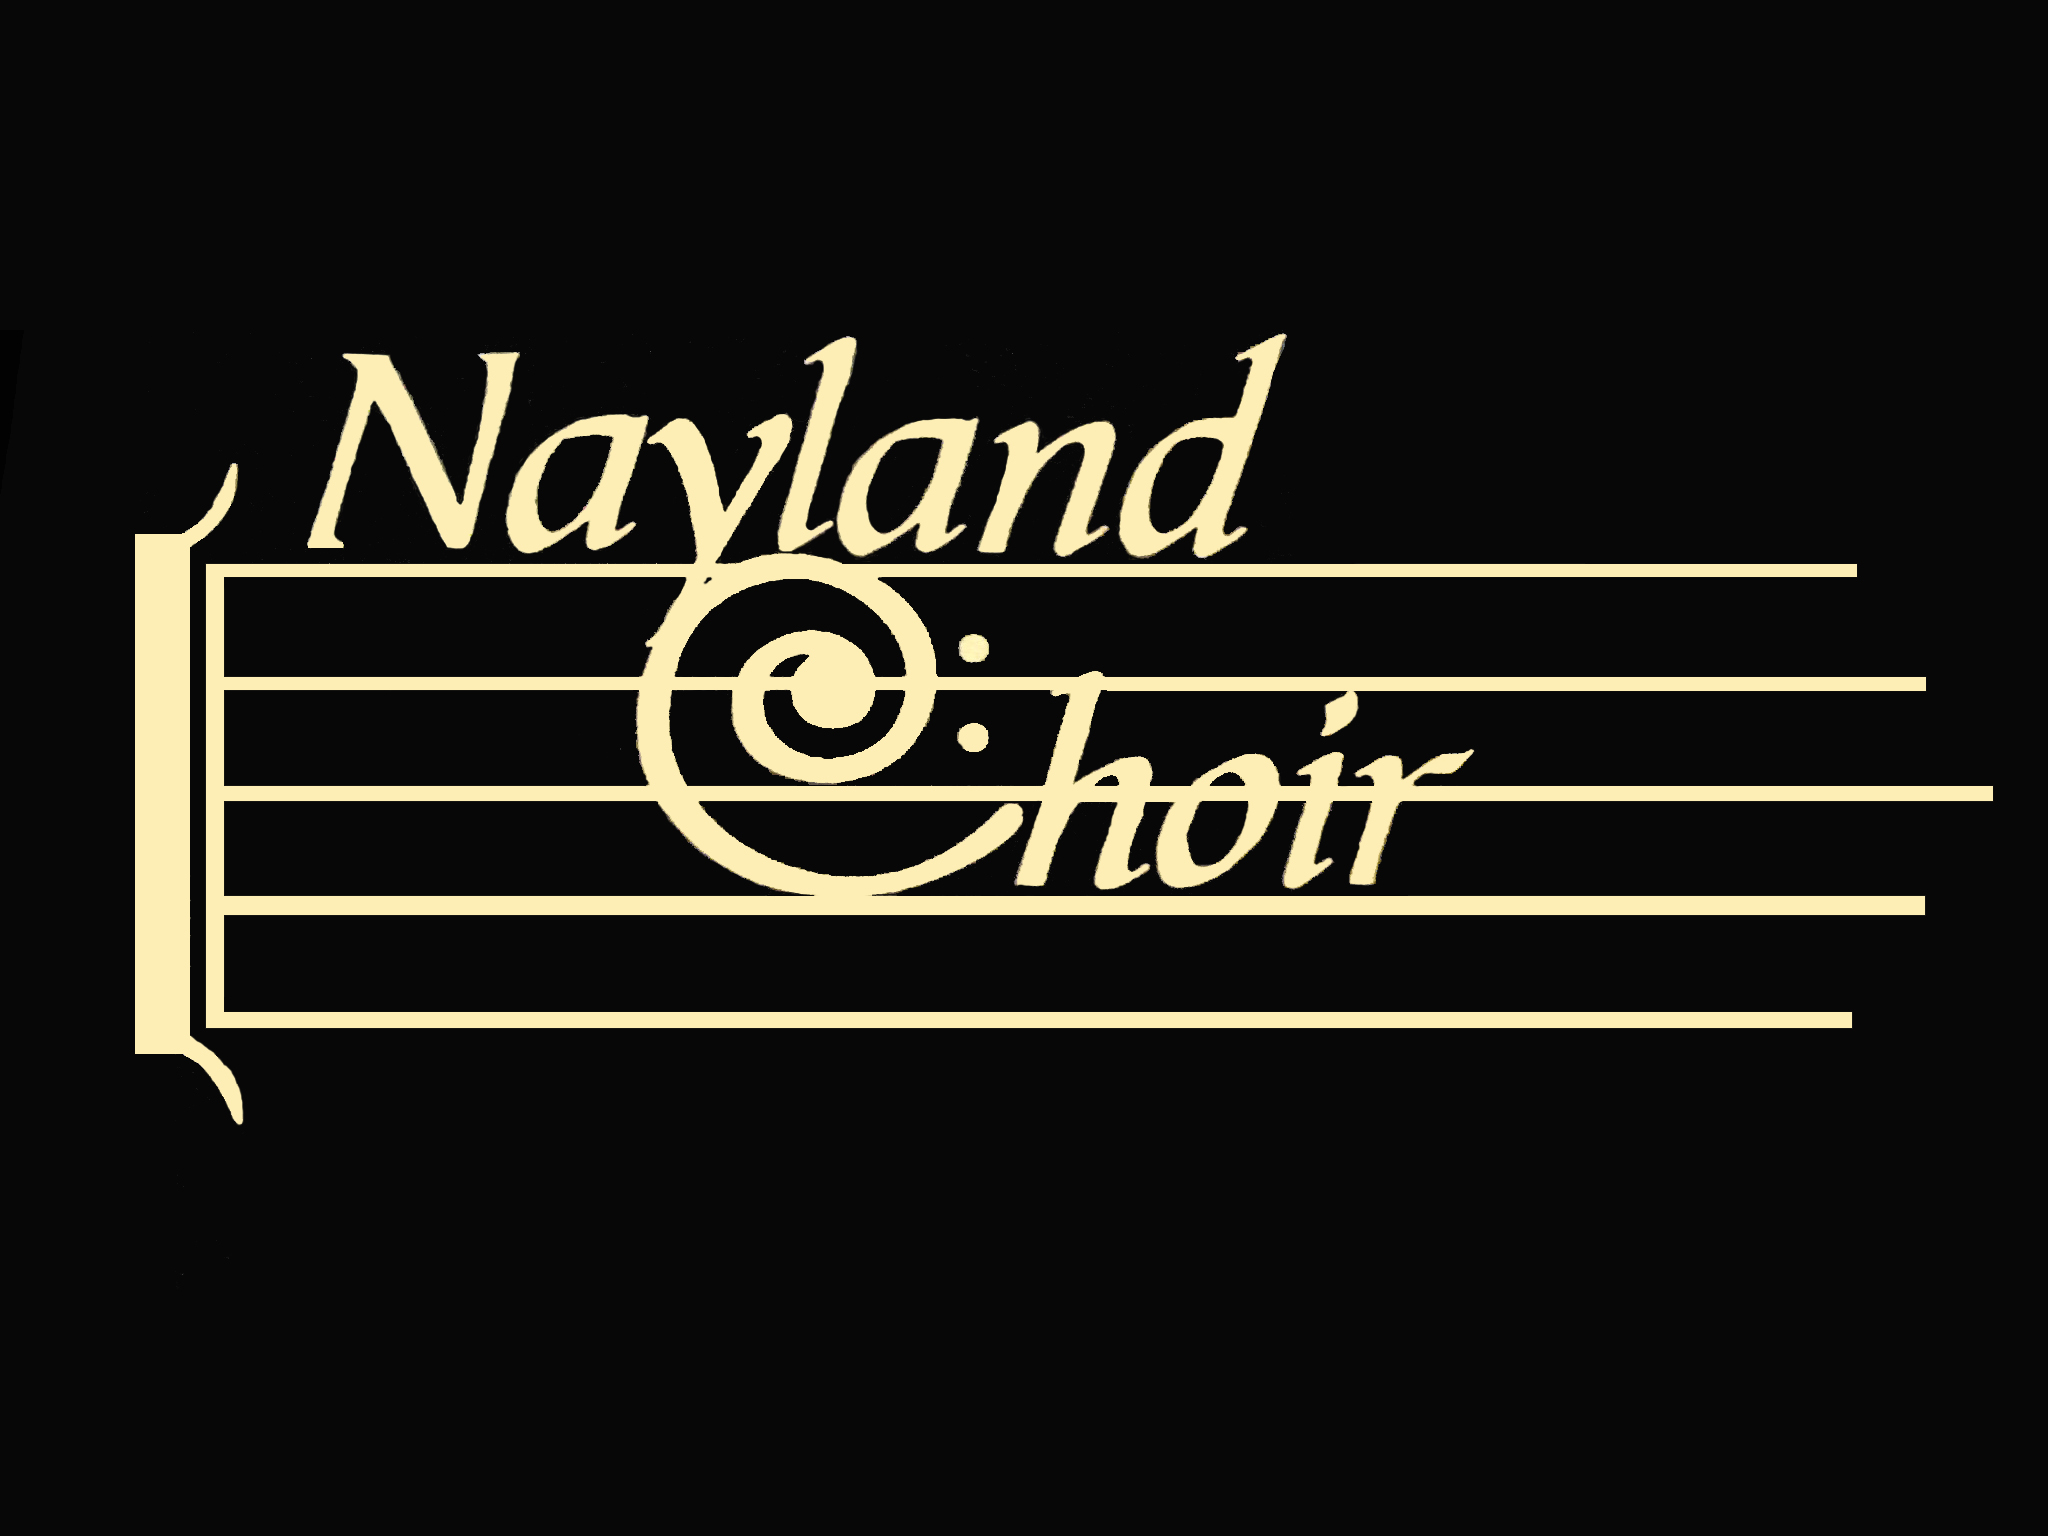 Nayland Choir logo